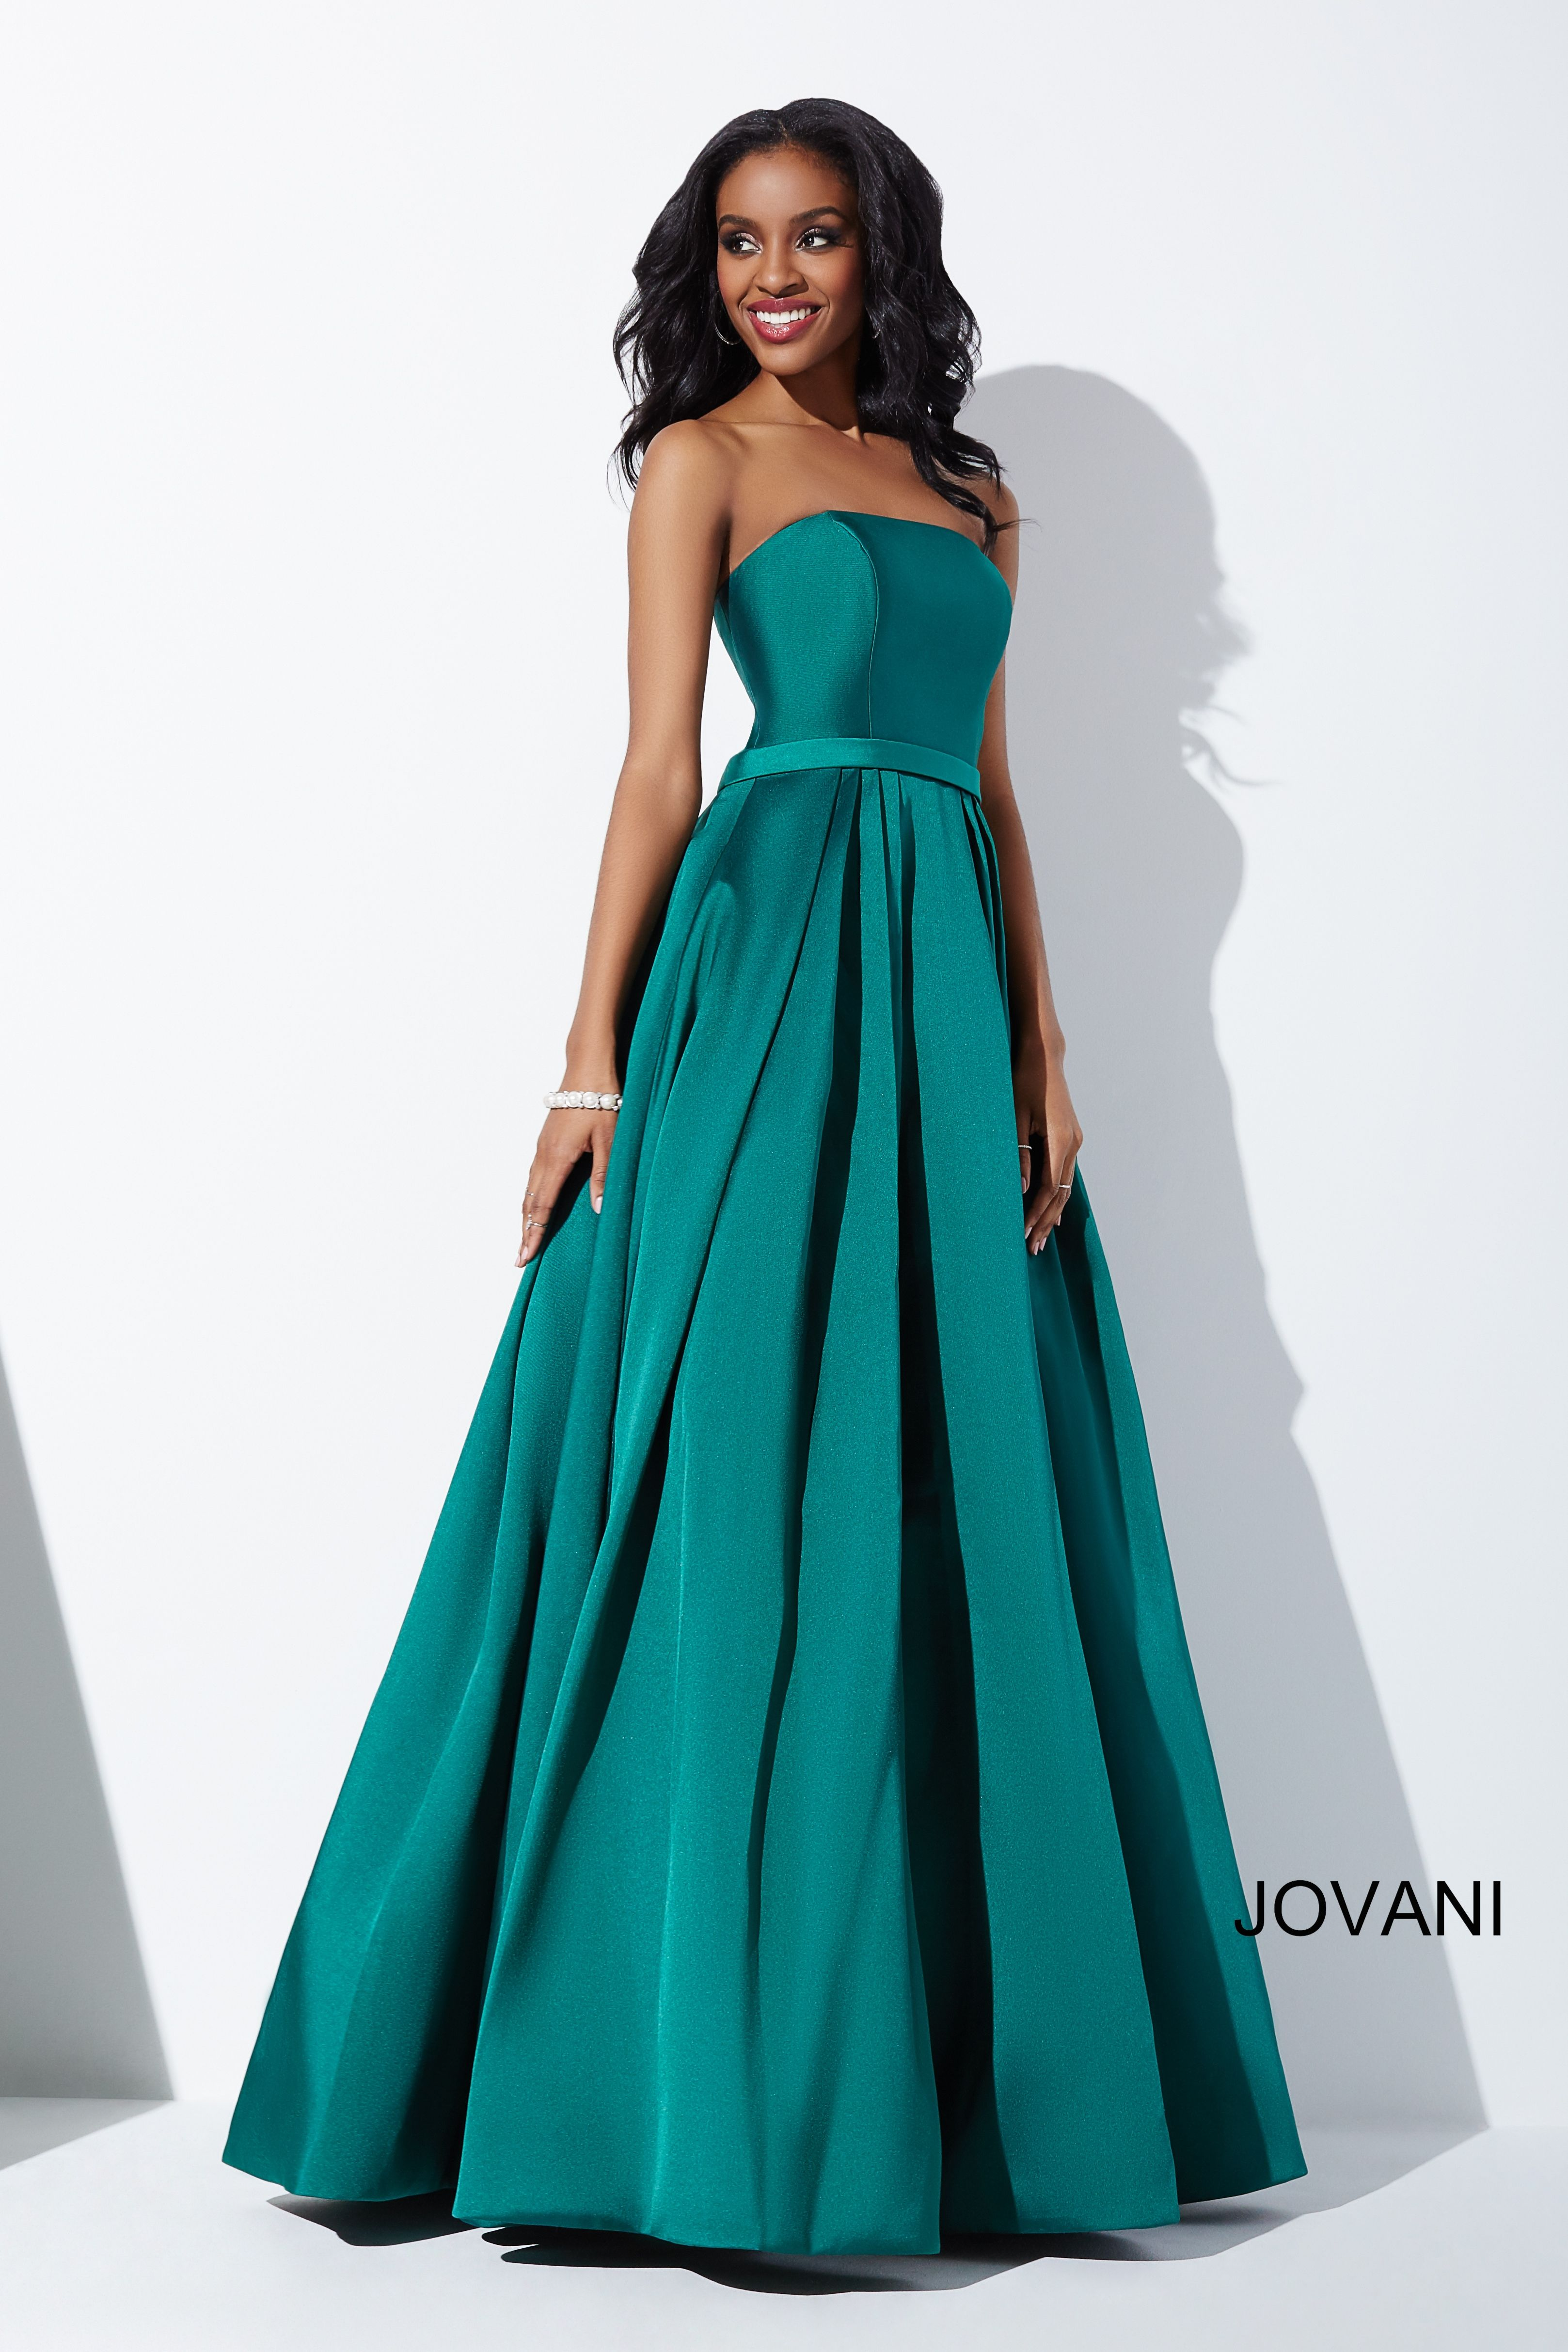 Gorgeous in Jovani style 39243 available at WhatchamaCallit ...